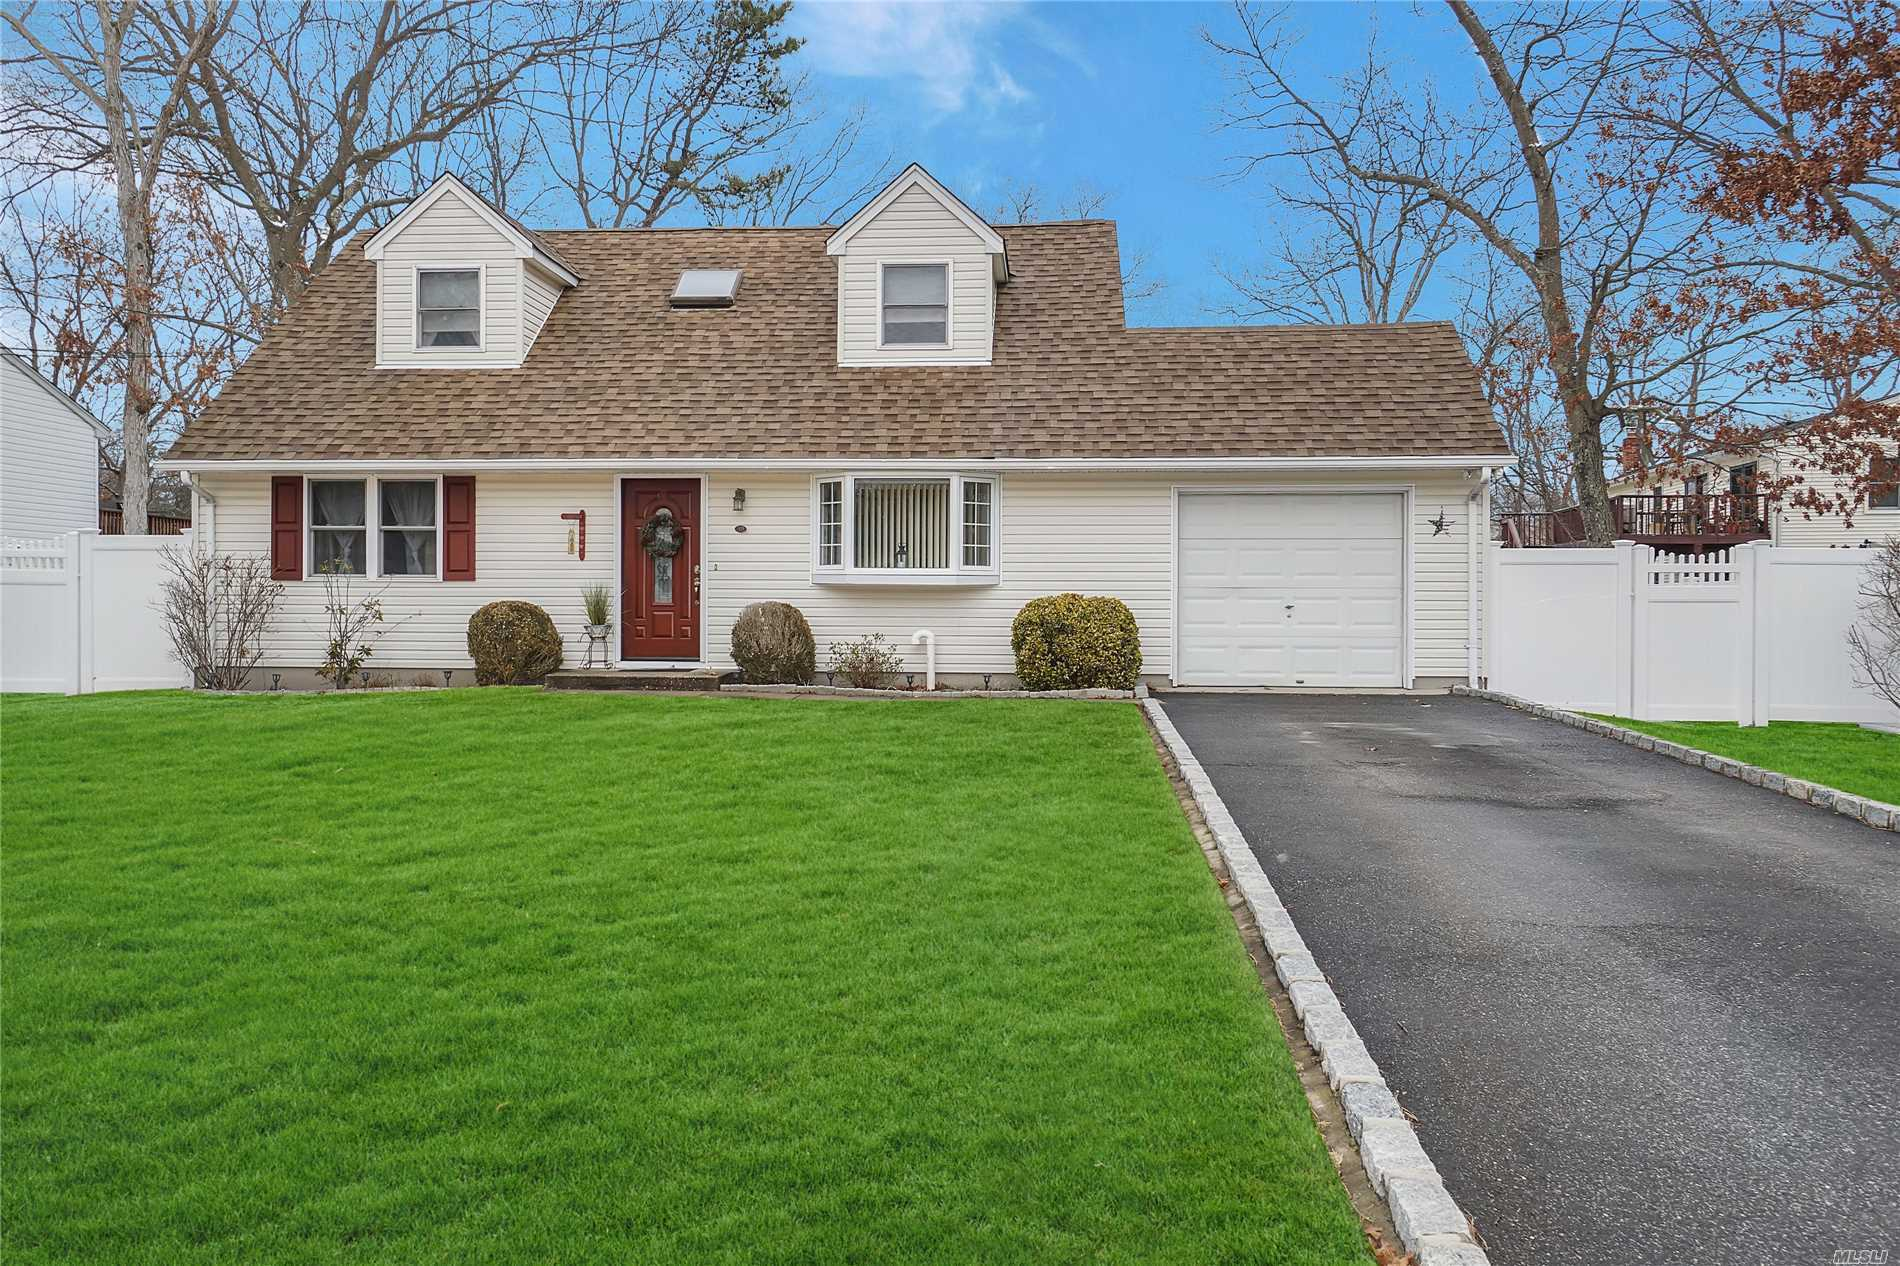 Nicely Updated Home With Granite Kitchen/New 1 Layer Roof-6' Vinyl Fence, Baths, Oil Tank Replaced, Bb Drive, Original Owners.Ceiling Fans, New Front Door, Swezey Oil Burner K, New Micro+ Washing Machine, Rear Deck, Tilt In Windows, * Tax-$1138, Cherokee Elem. School/Summer Occupancy.